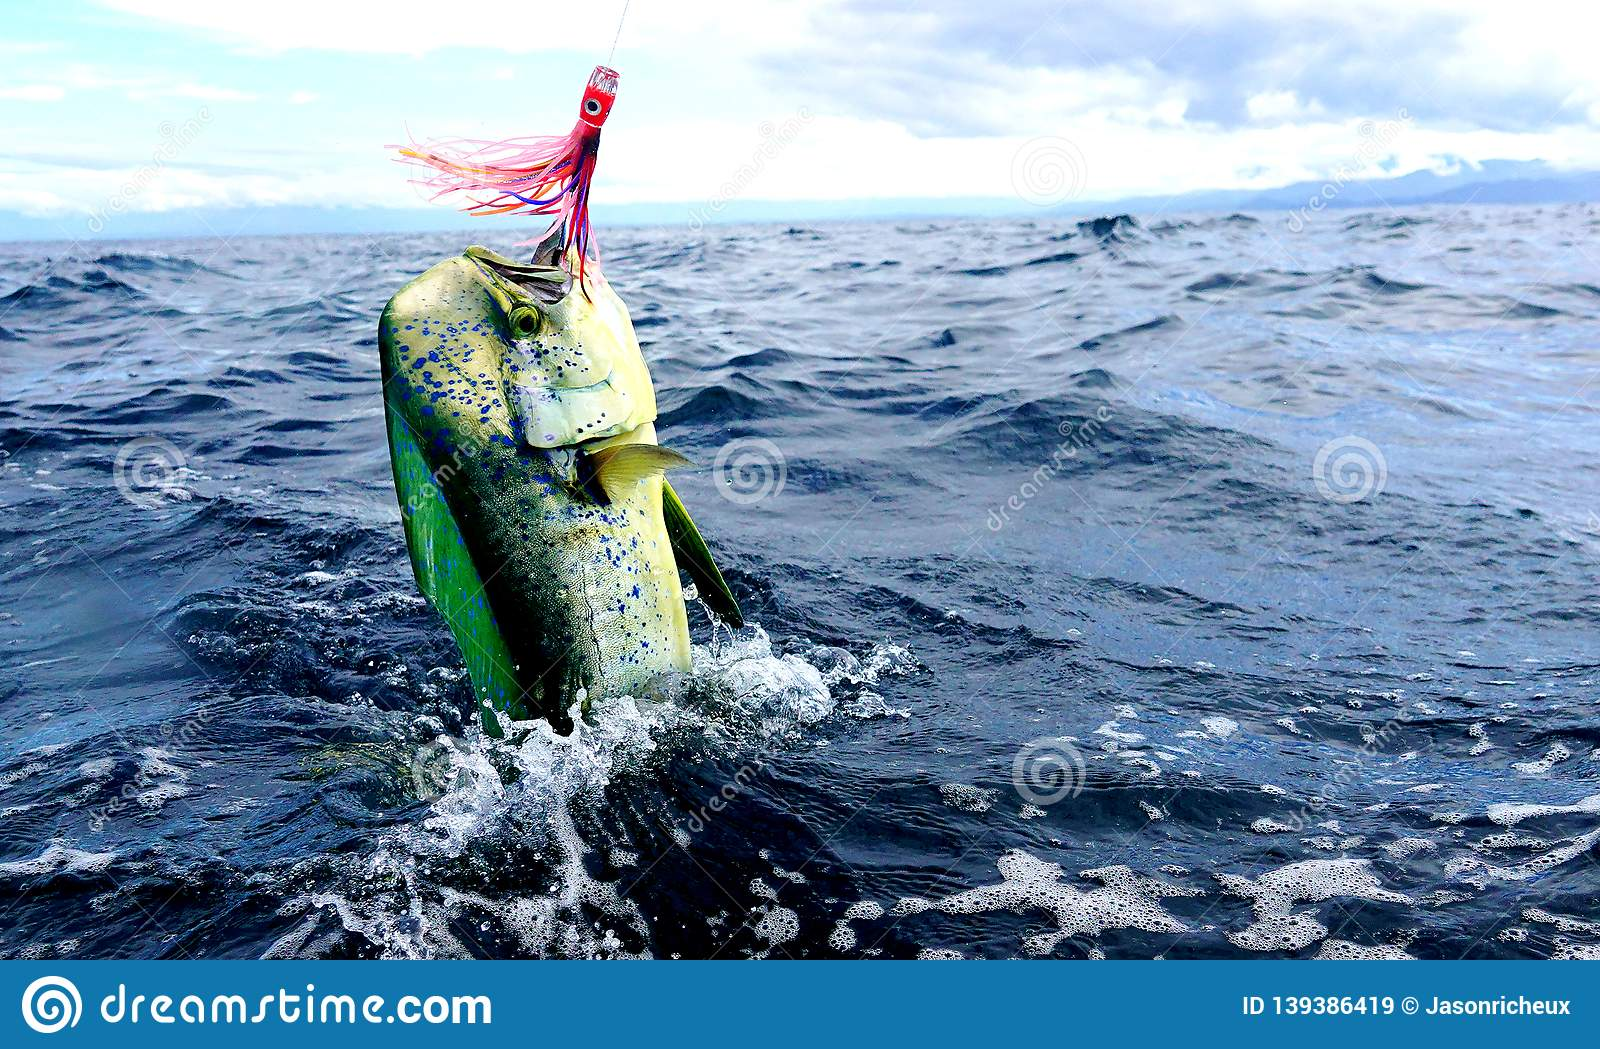 Mahi mahi or Dolphin fish jumping.